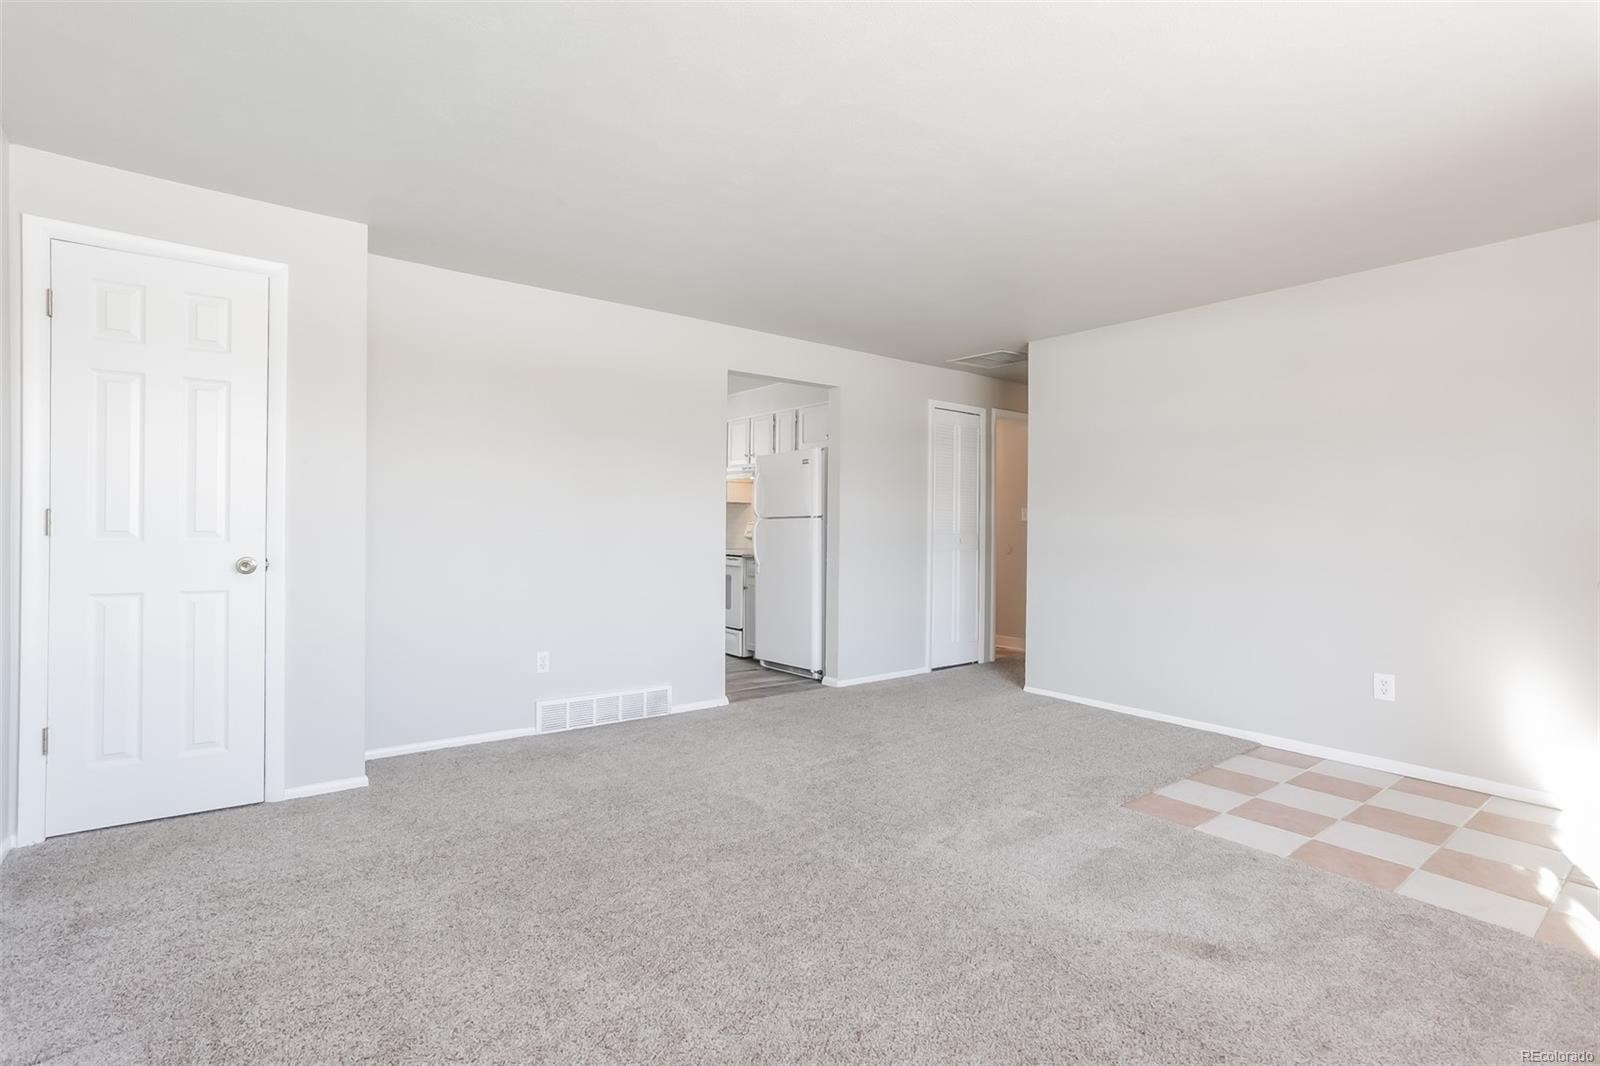 MLS# 8303079 - 3 - 7489 Jay Court, Arvada, CO 80003